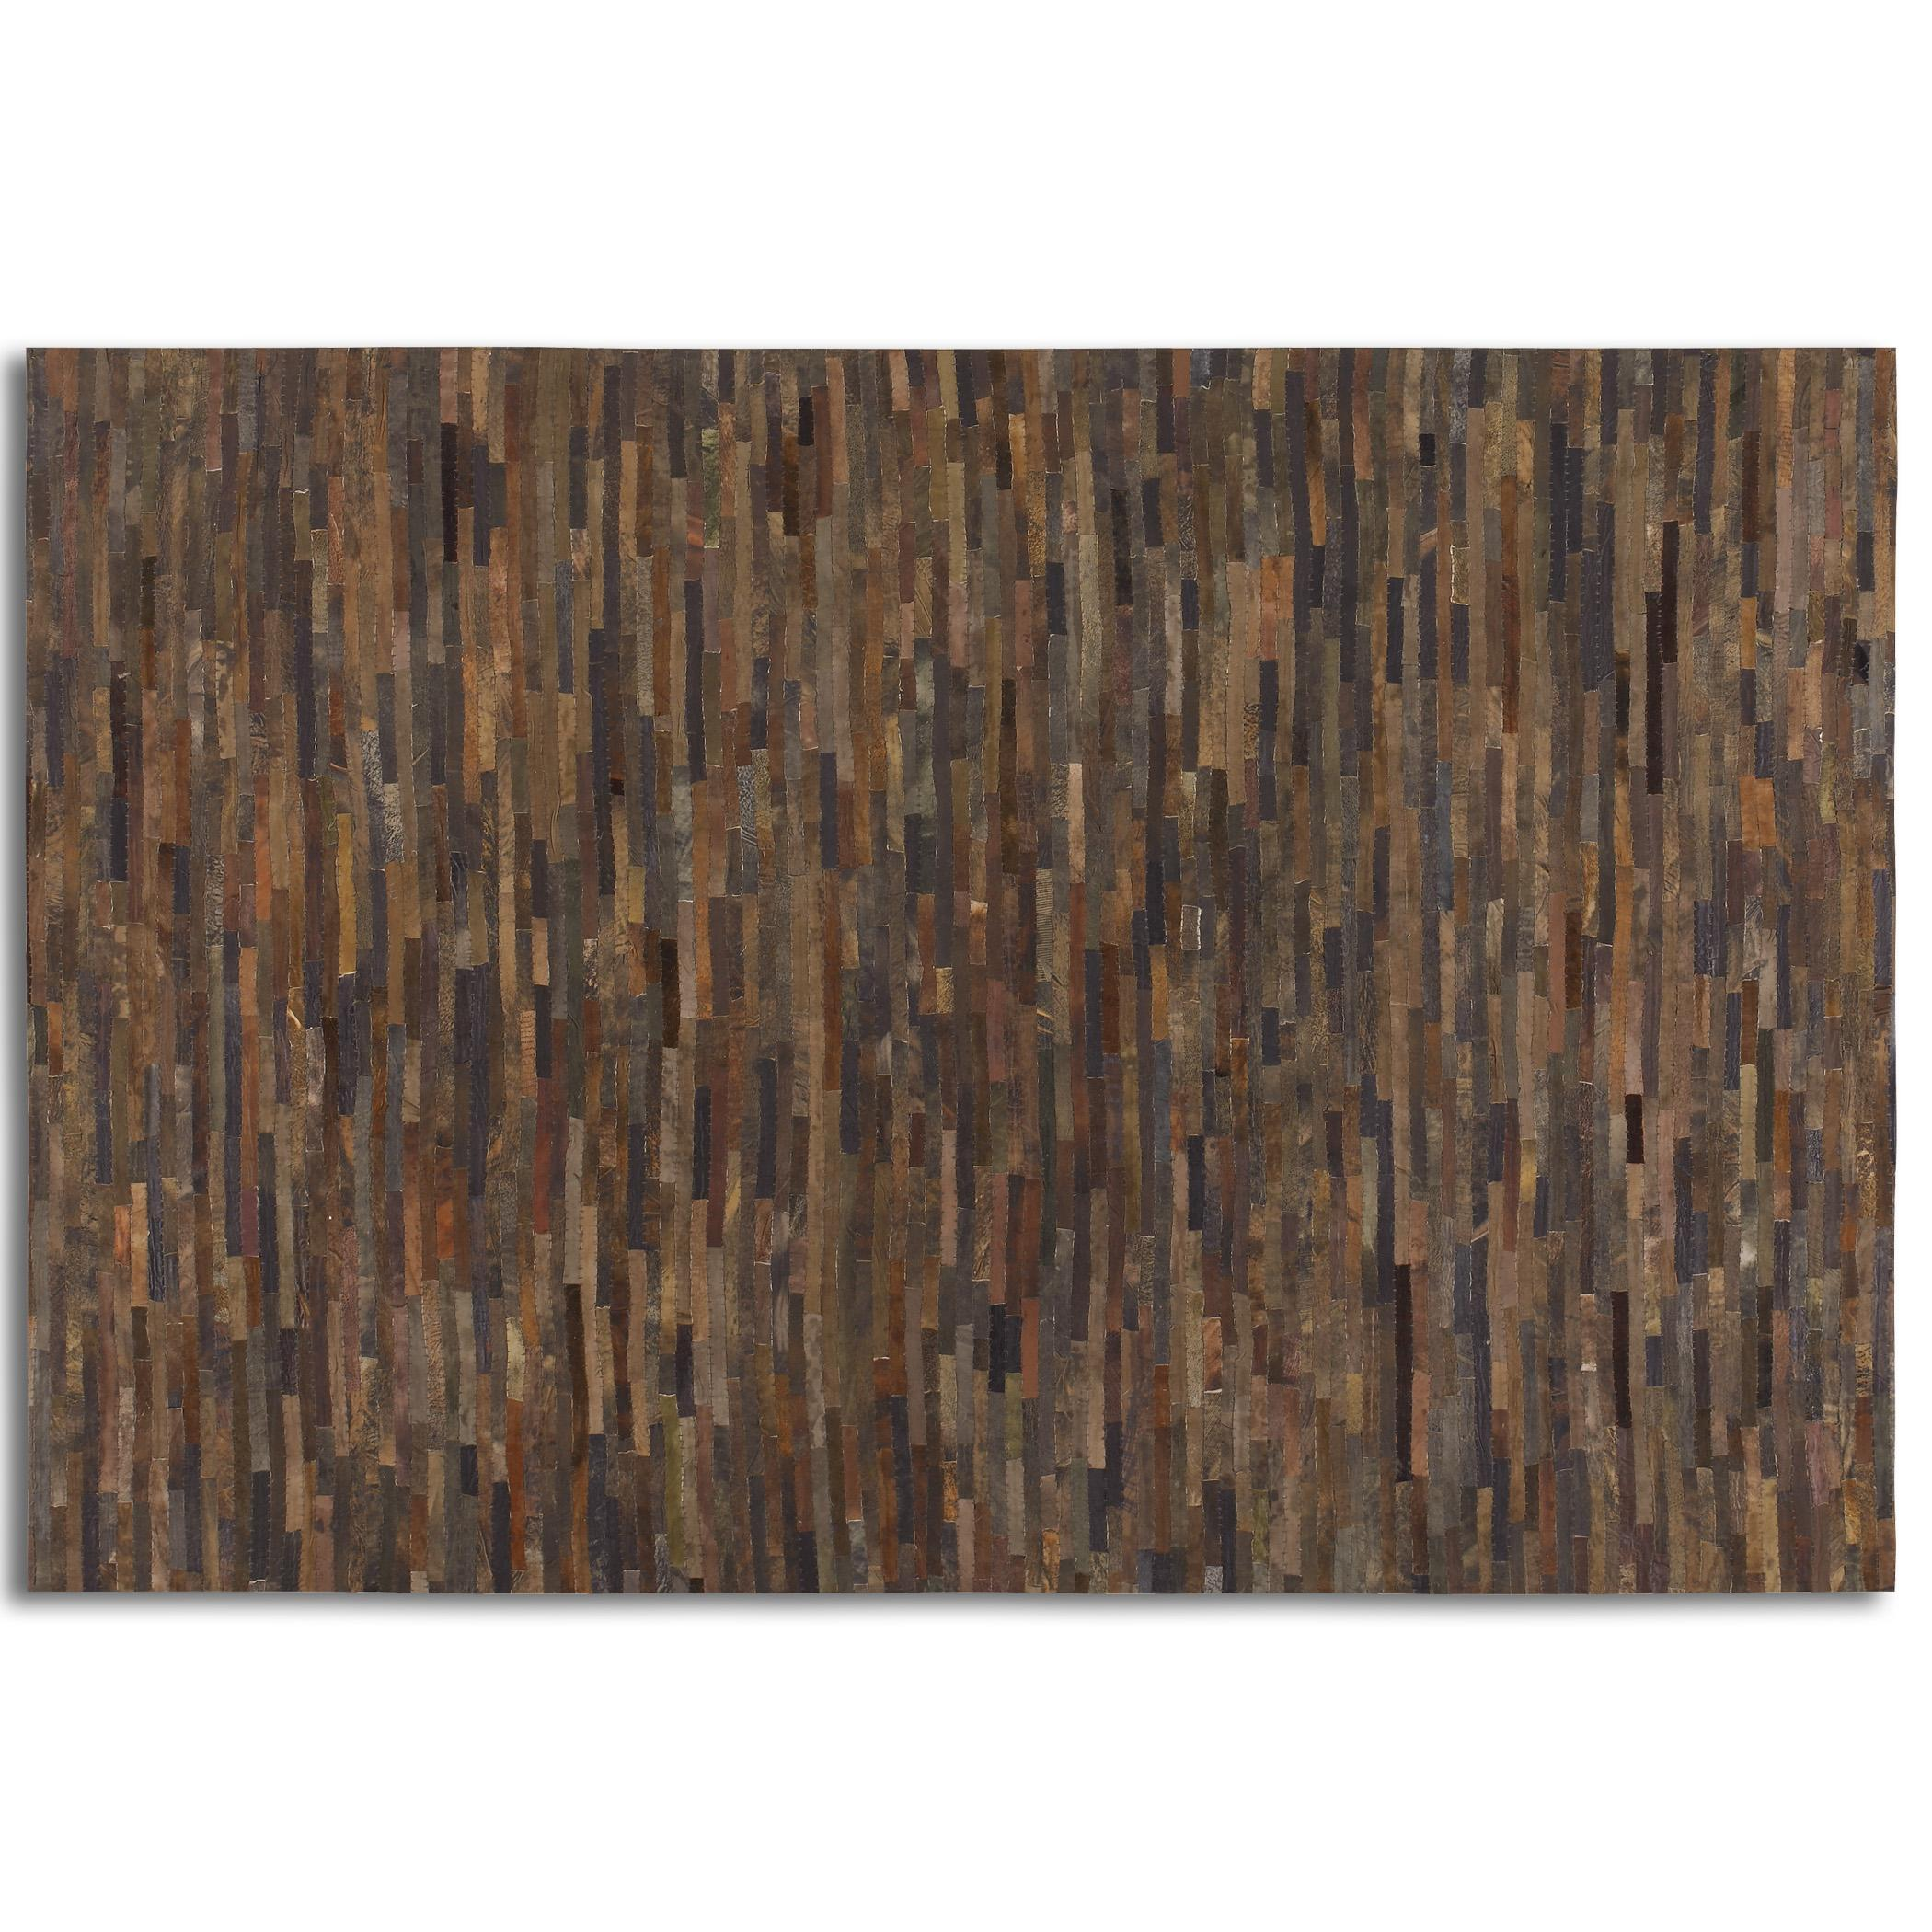 Uttermost Rugs Malone 5 X 8 Patchwork Rug - Item Number: 71049-5